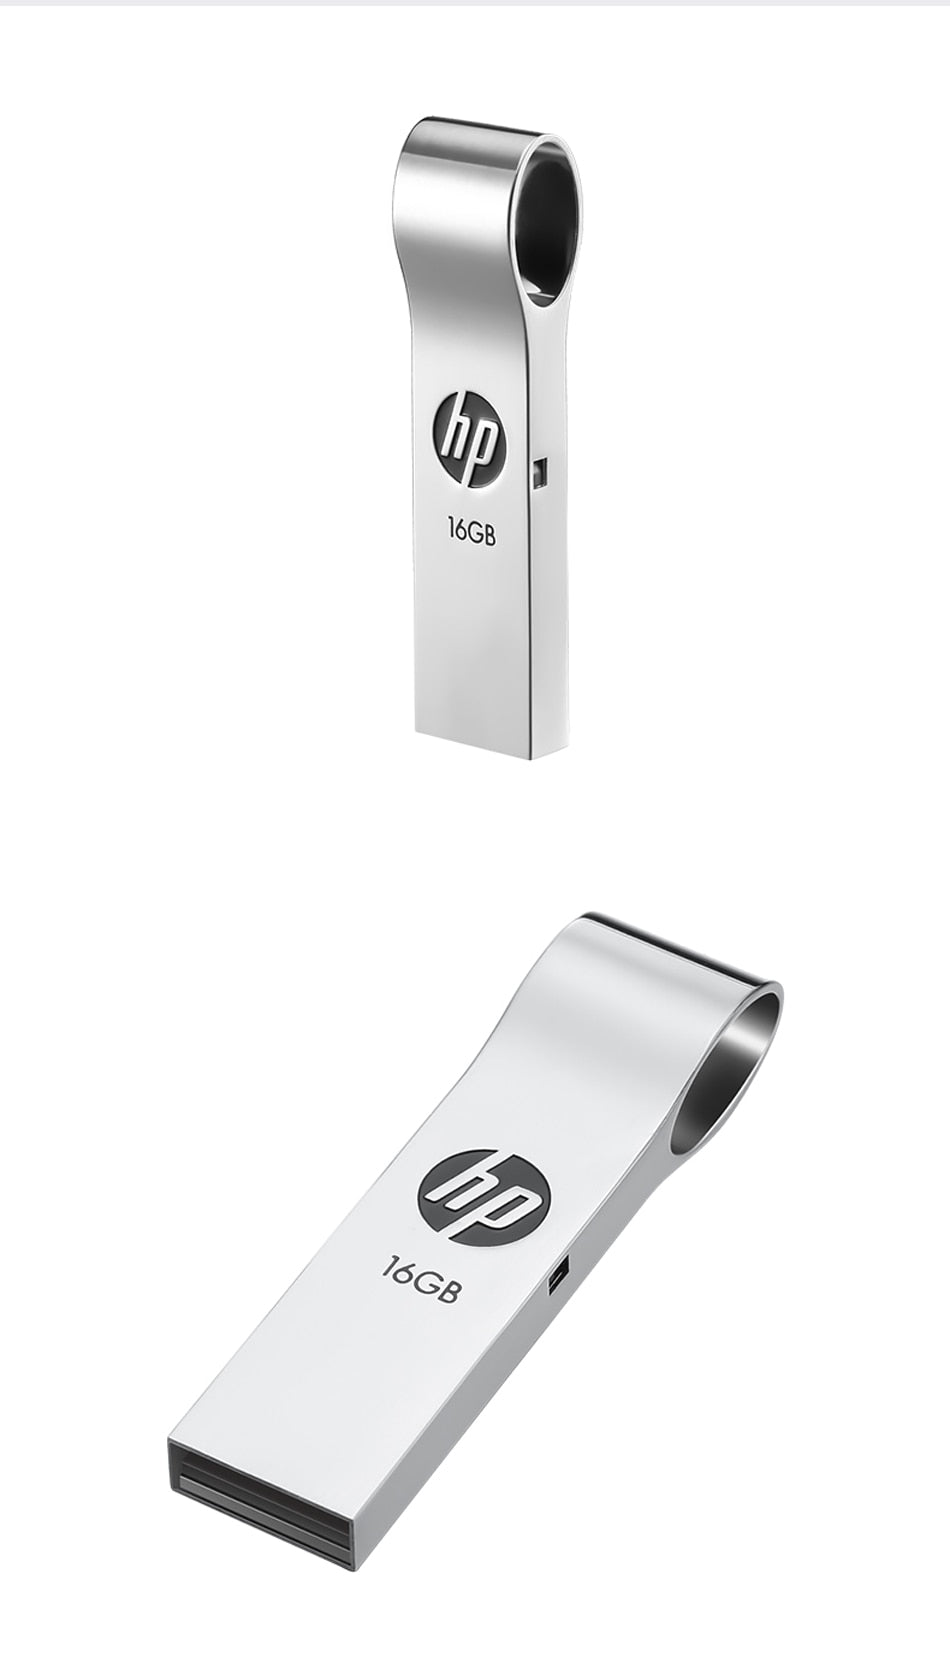 HP V285W Metal Key USB Flash Drive 8GB/16GB/32GB/64GB Waterproof Shockproof memoria usb pendrive memory USB stick for Laptop PC